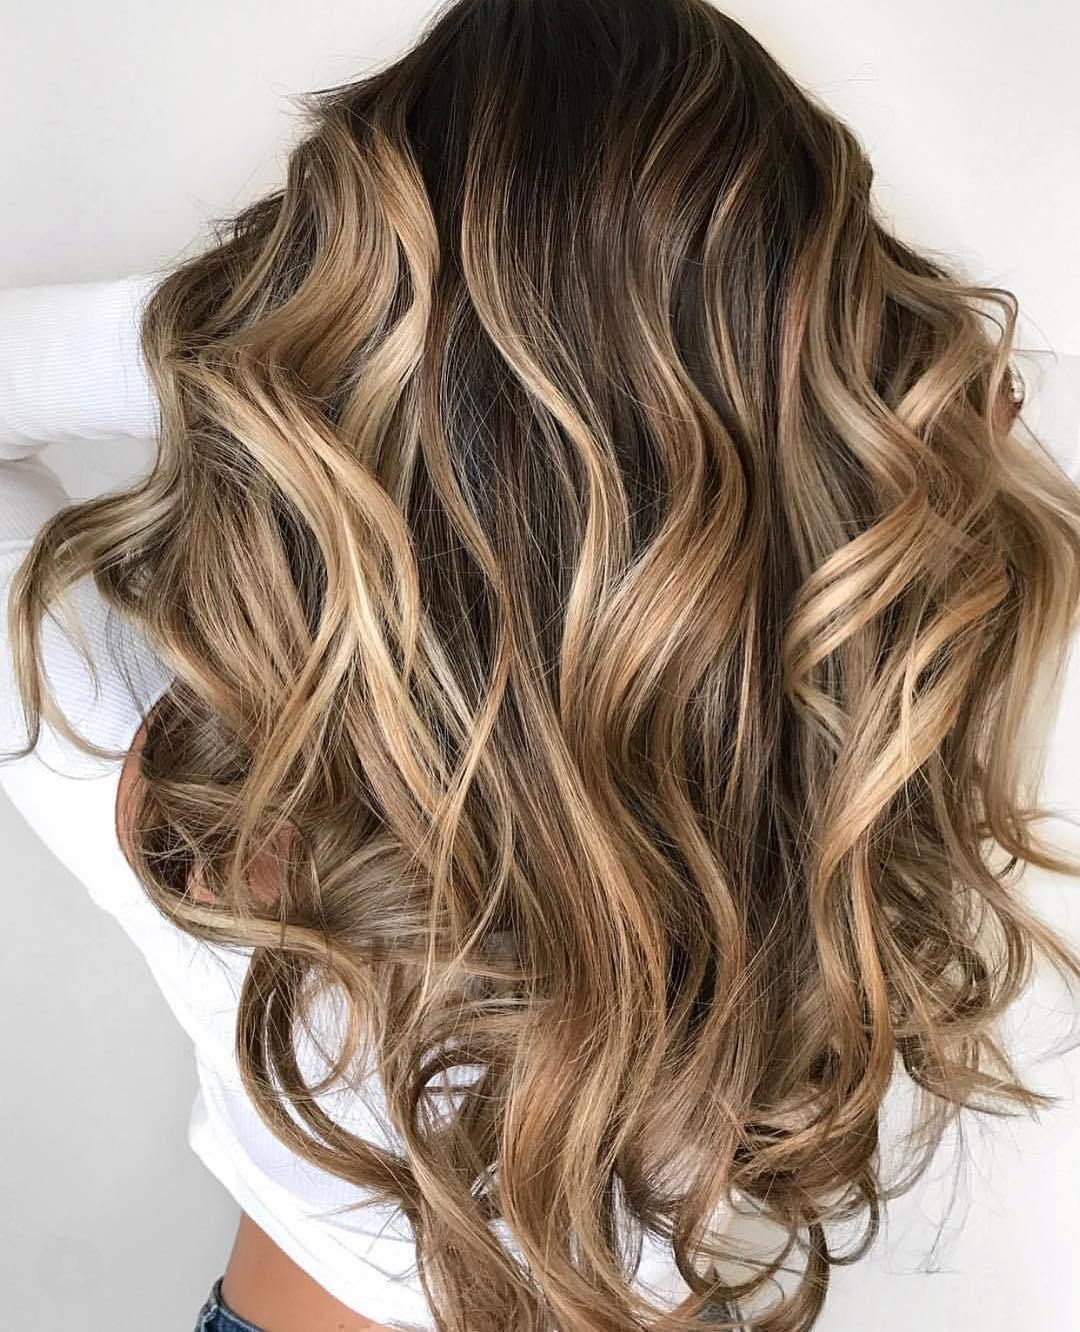 60 Looks With Caramel Highlights On Brown And Dark Brown Hair Brown Blonde Hair Hair Highlights Balayage Hair